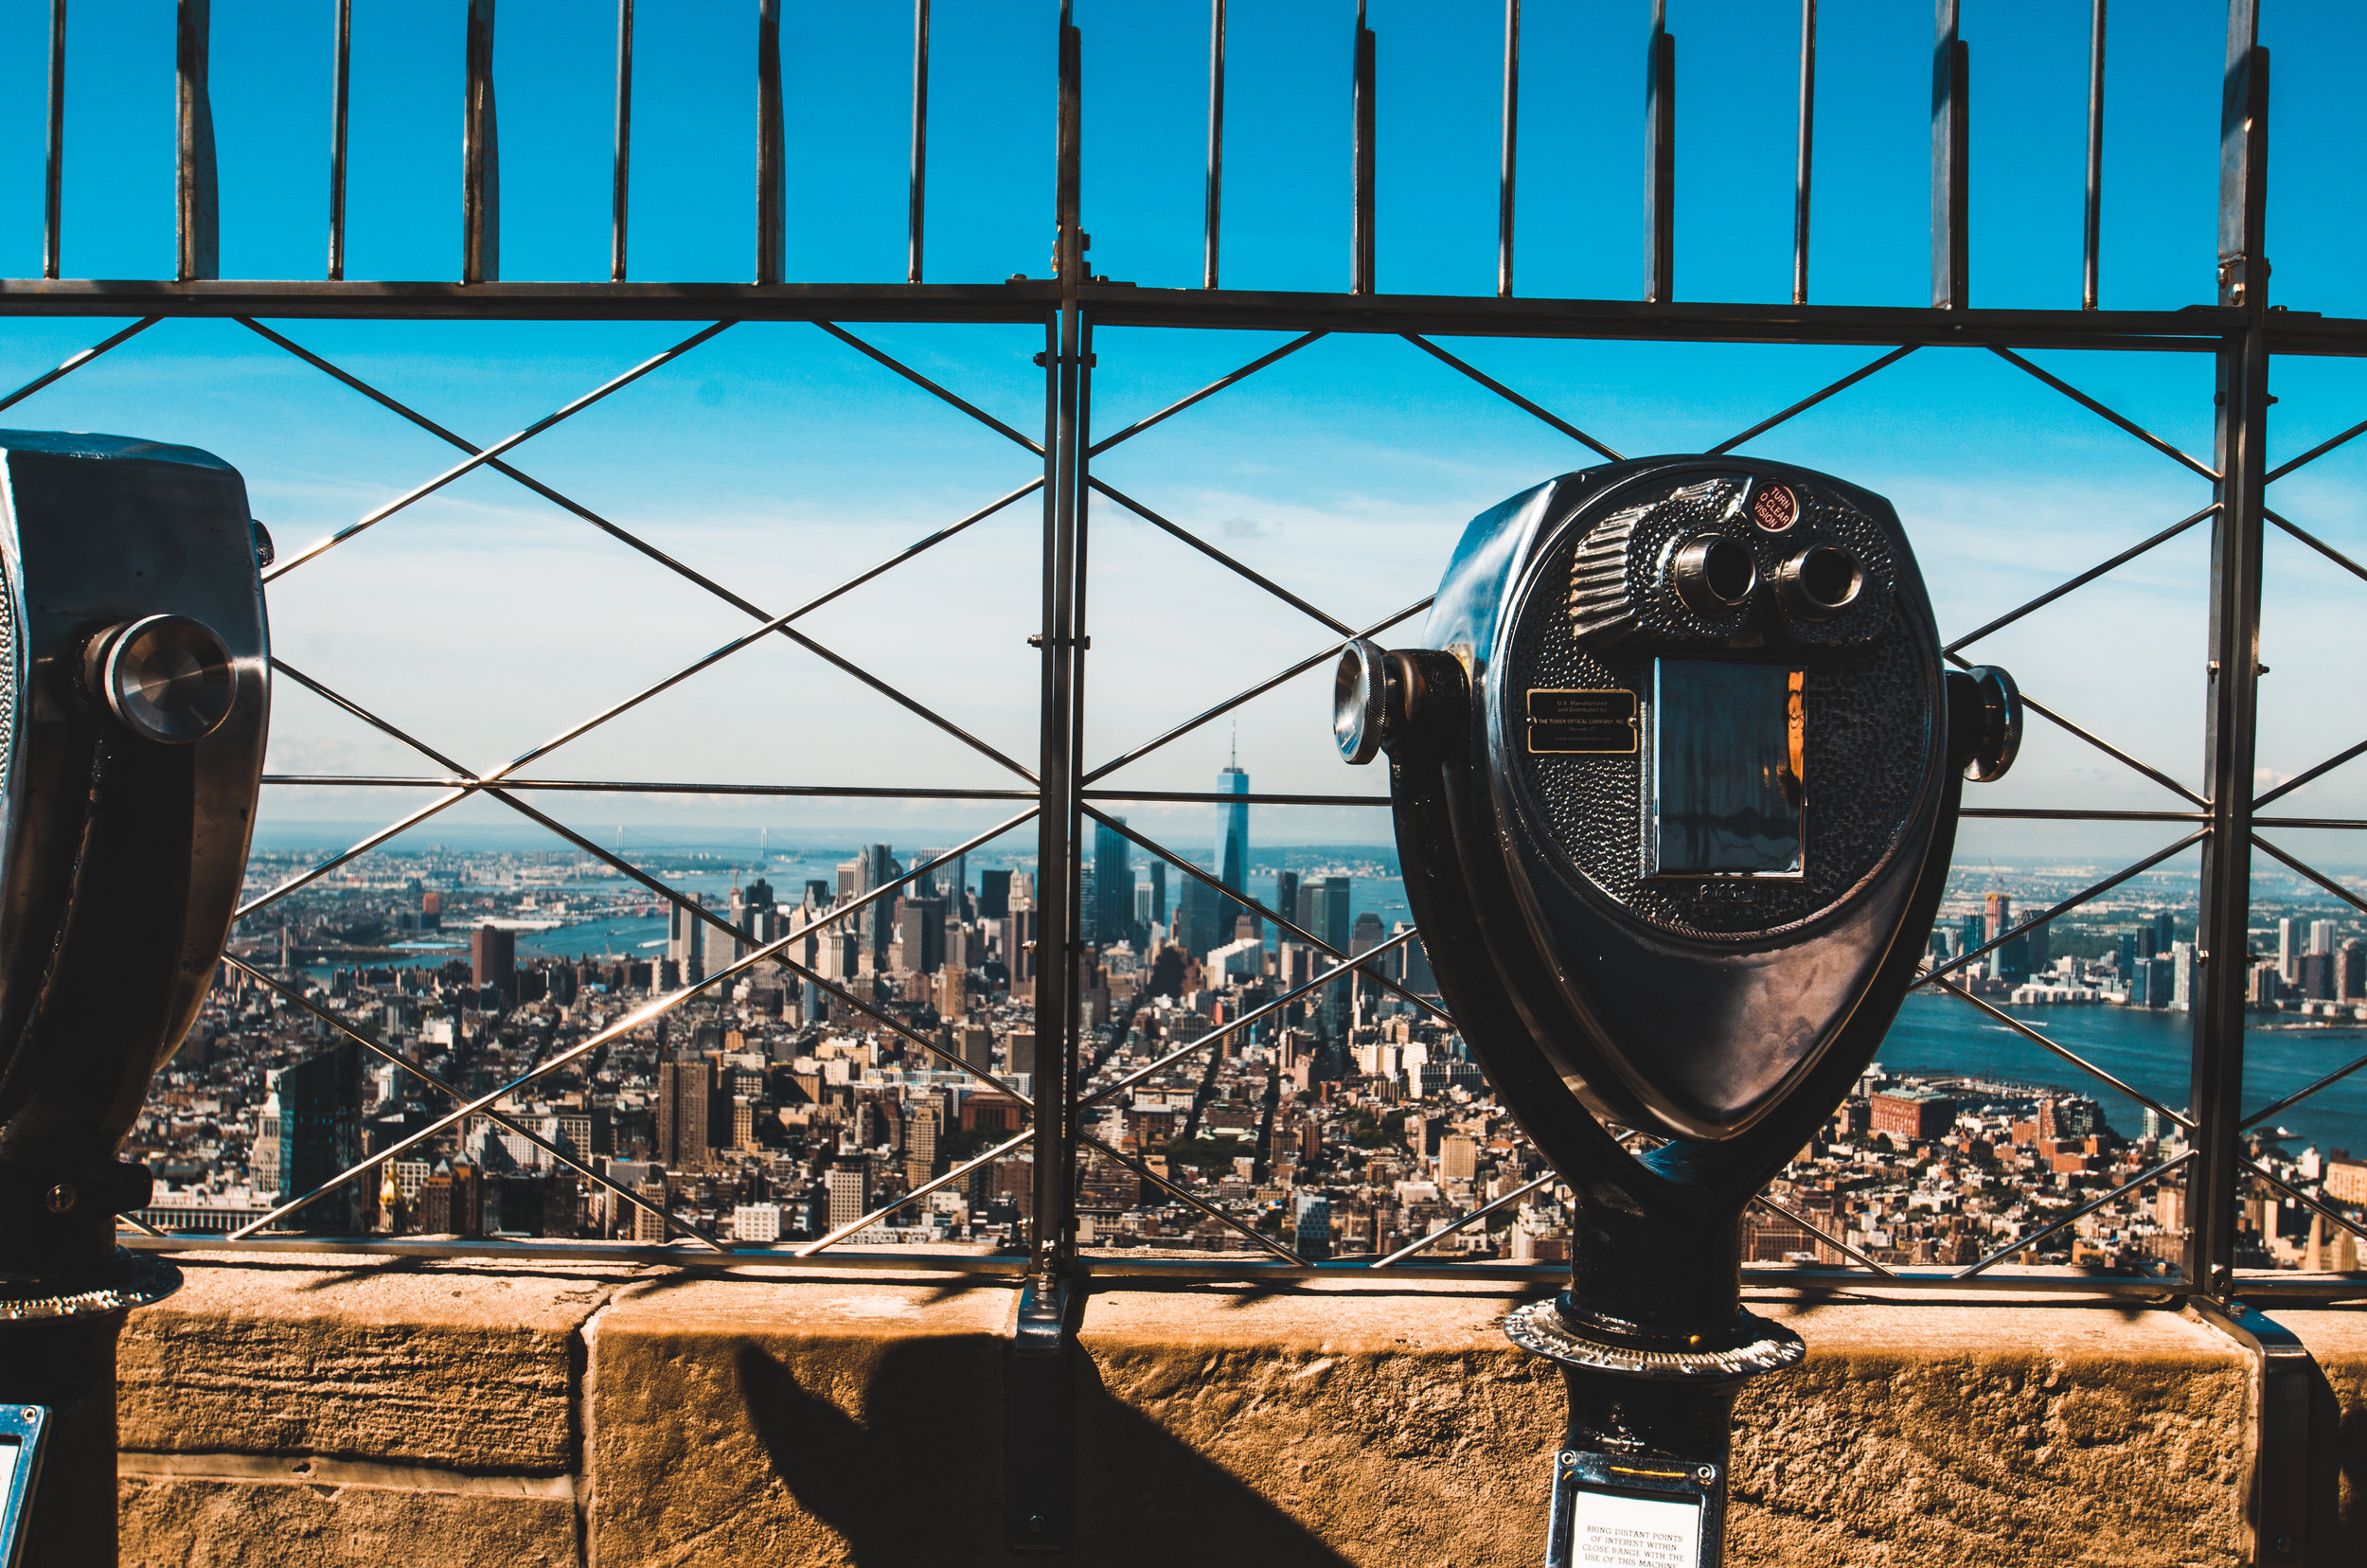 observation-deck-empire-state-building-new-york-city.jpg